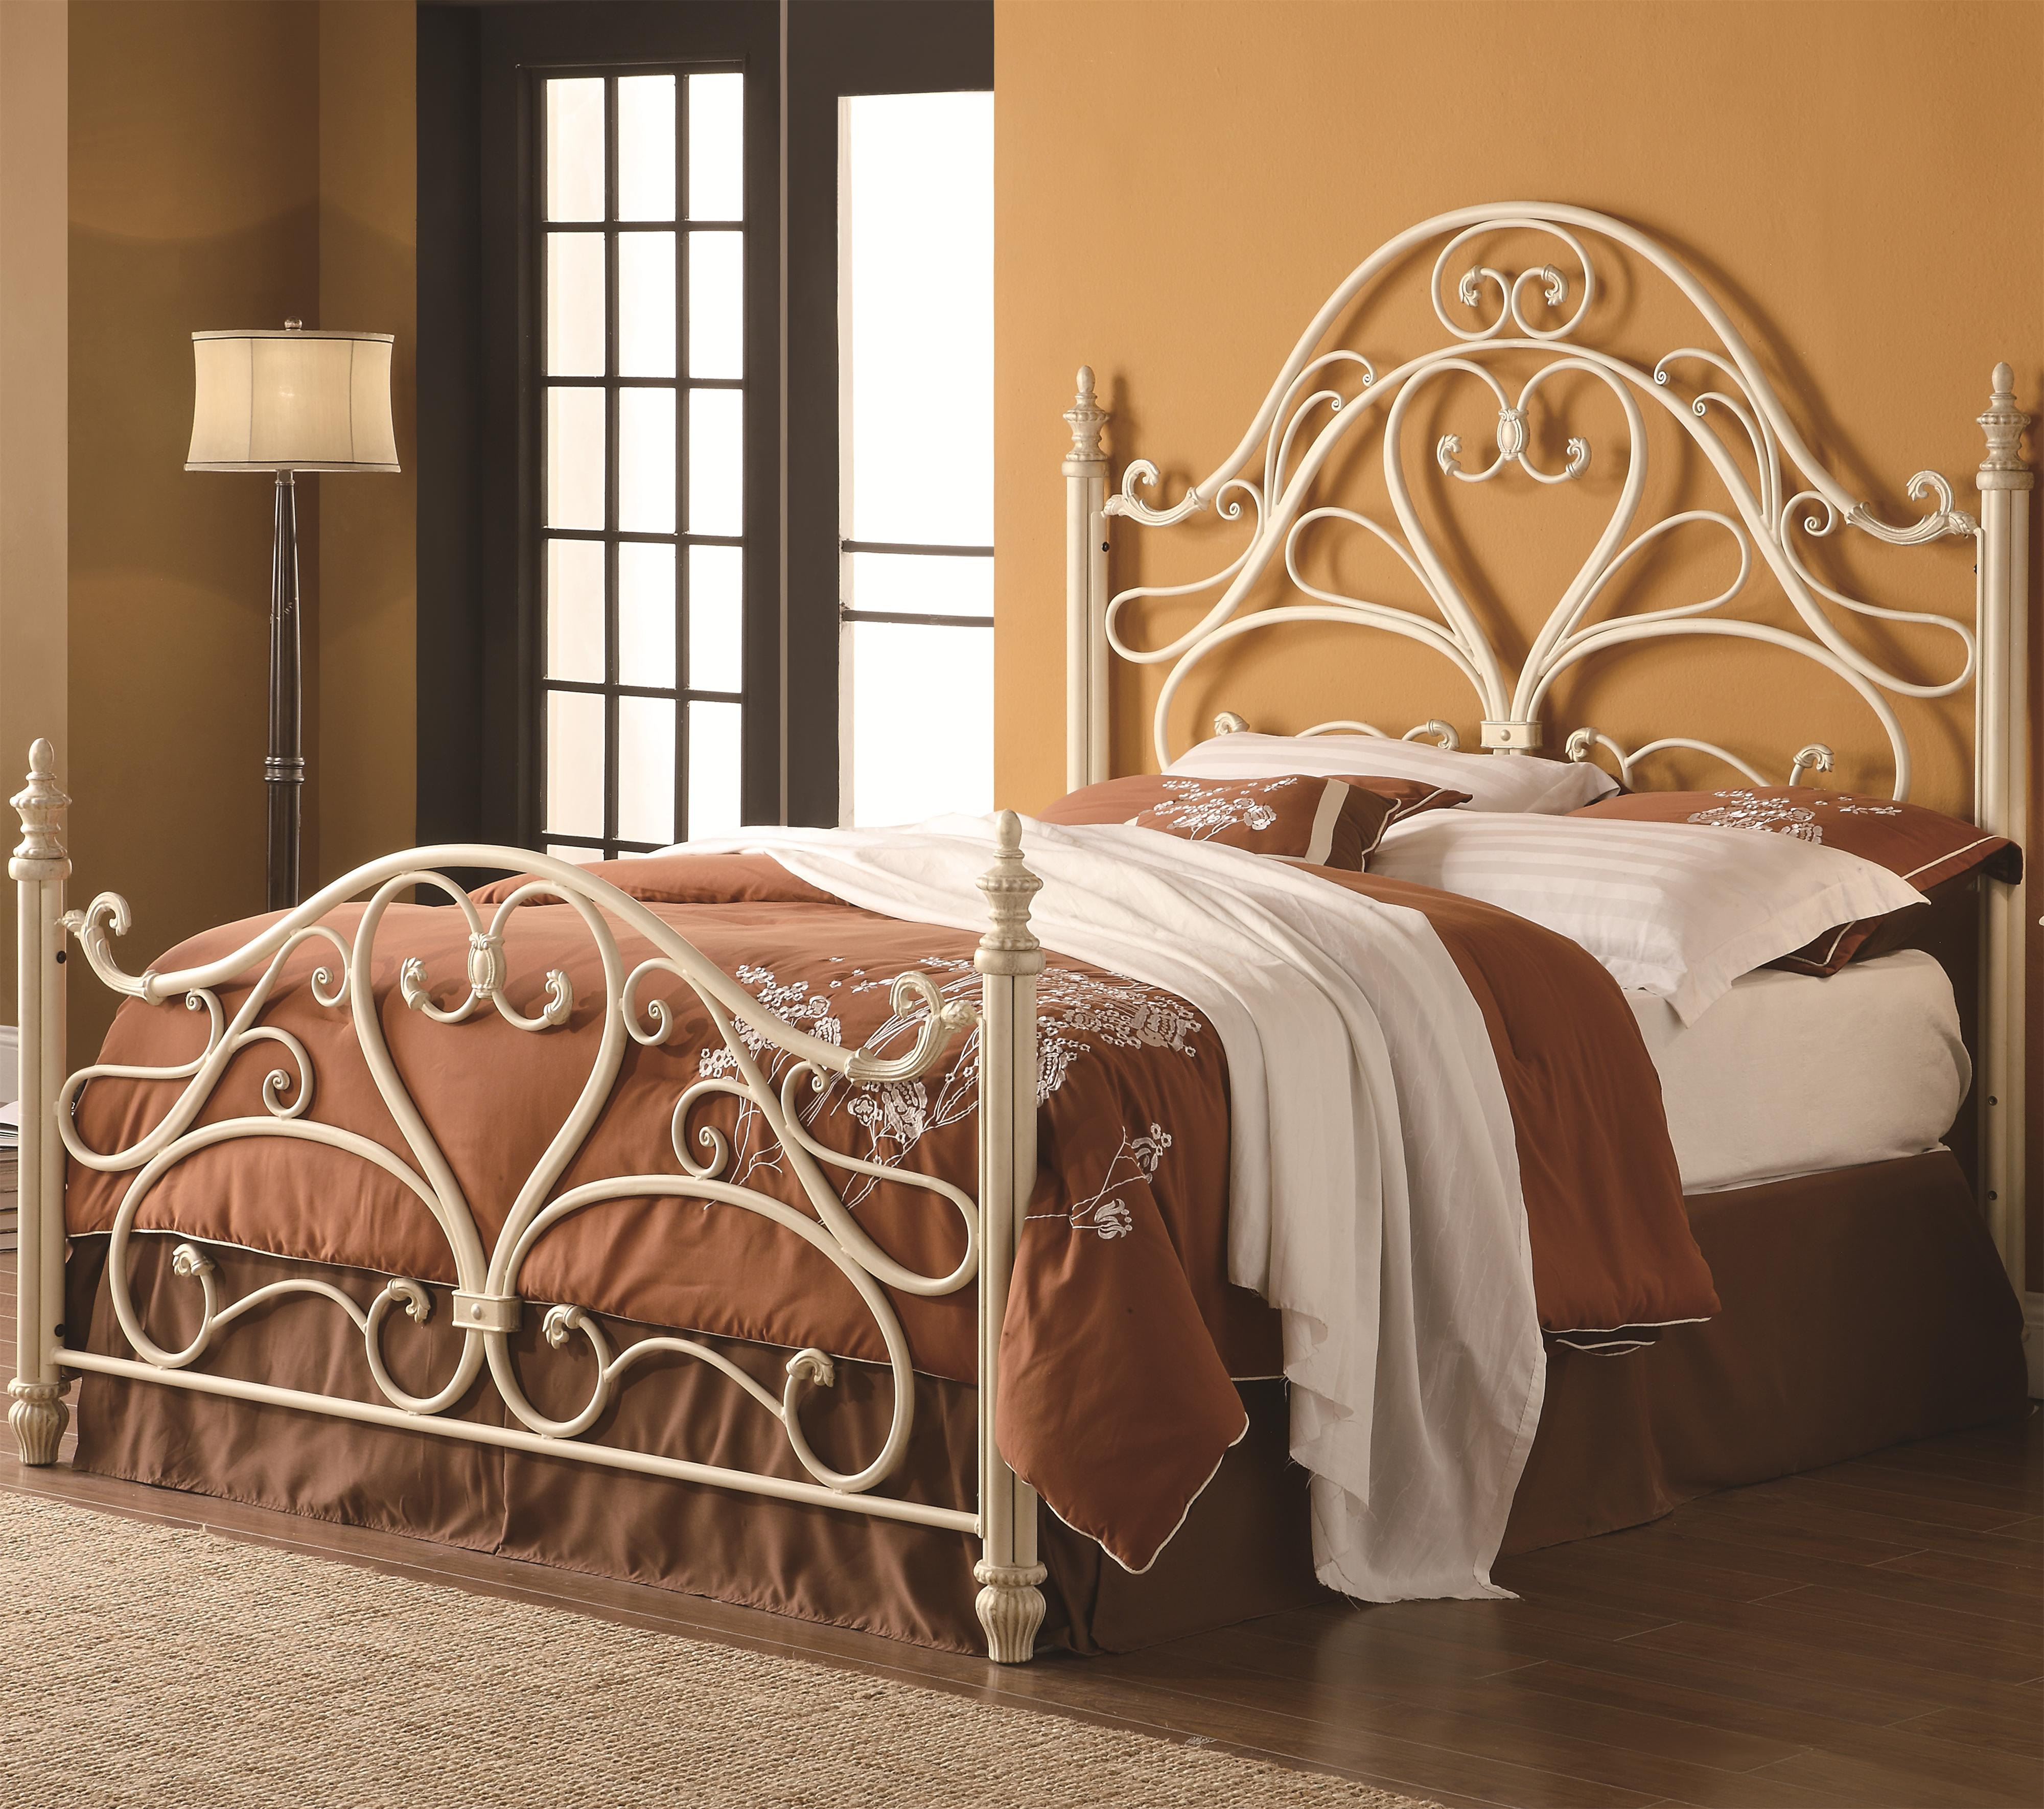 Bed frames headboards - Coaster Iron Beds And Headboards Queen Iron Bed Item Number 300264q 1208